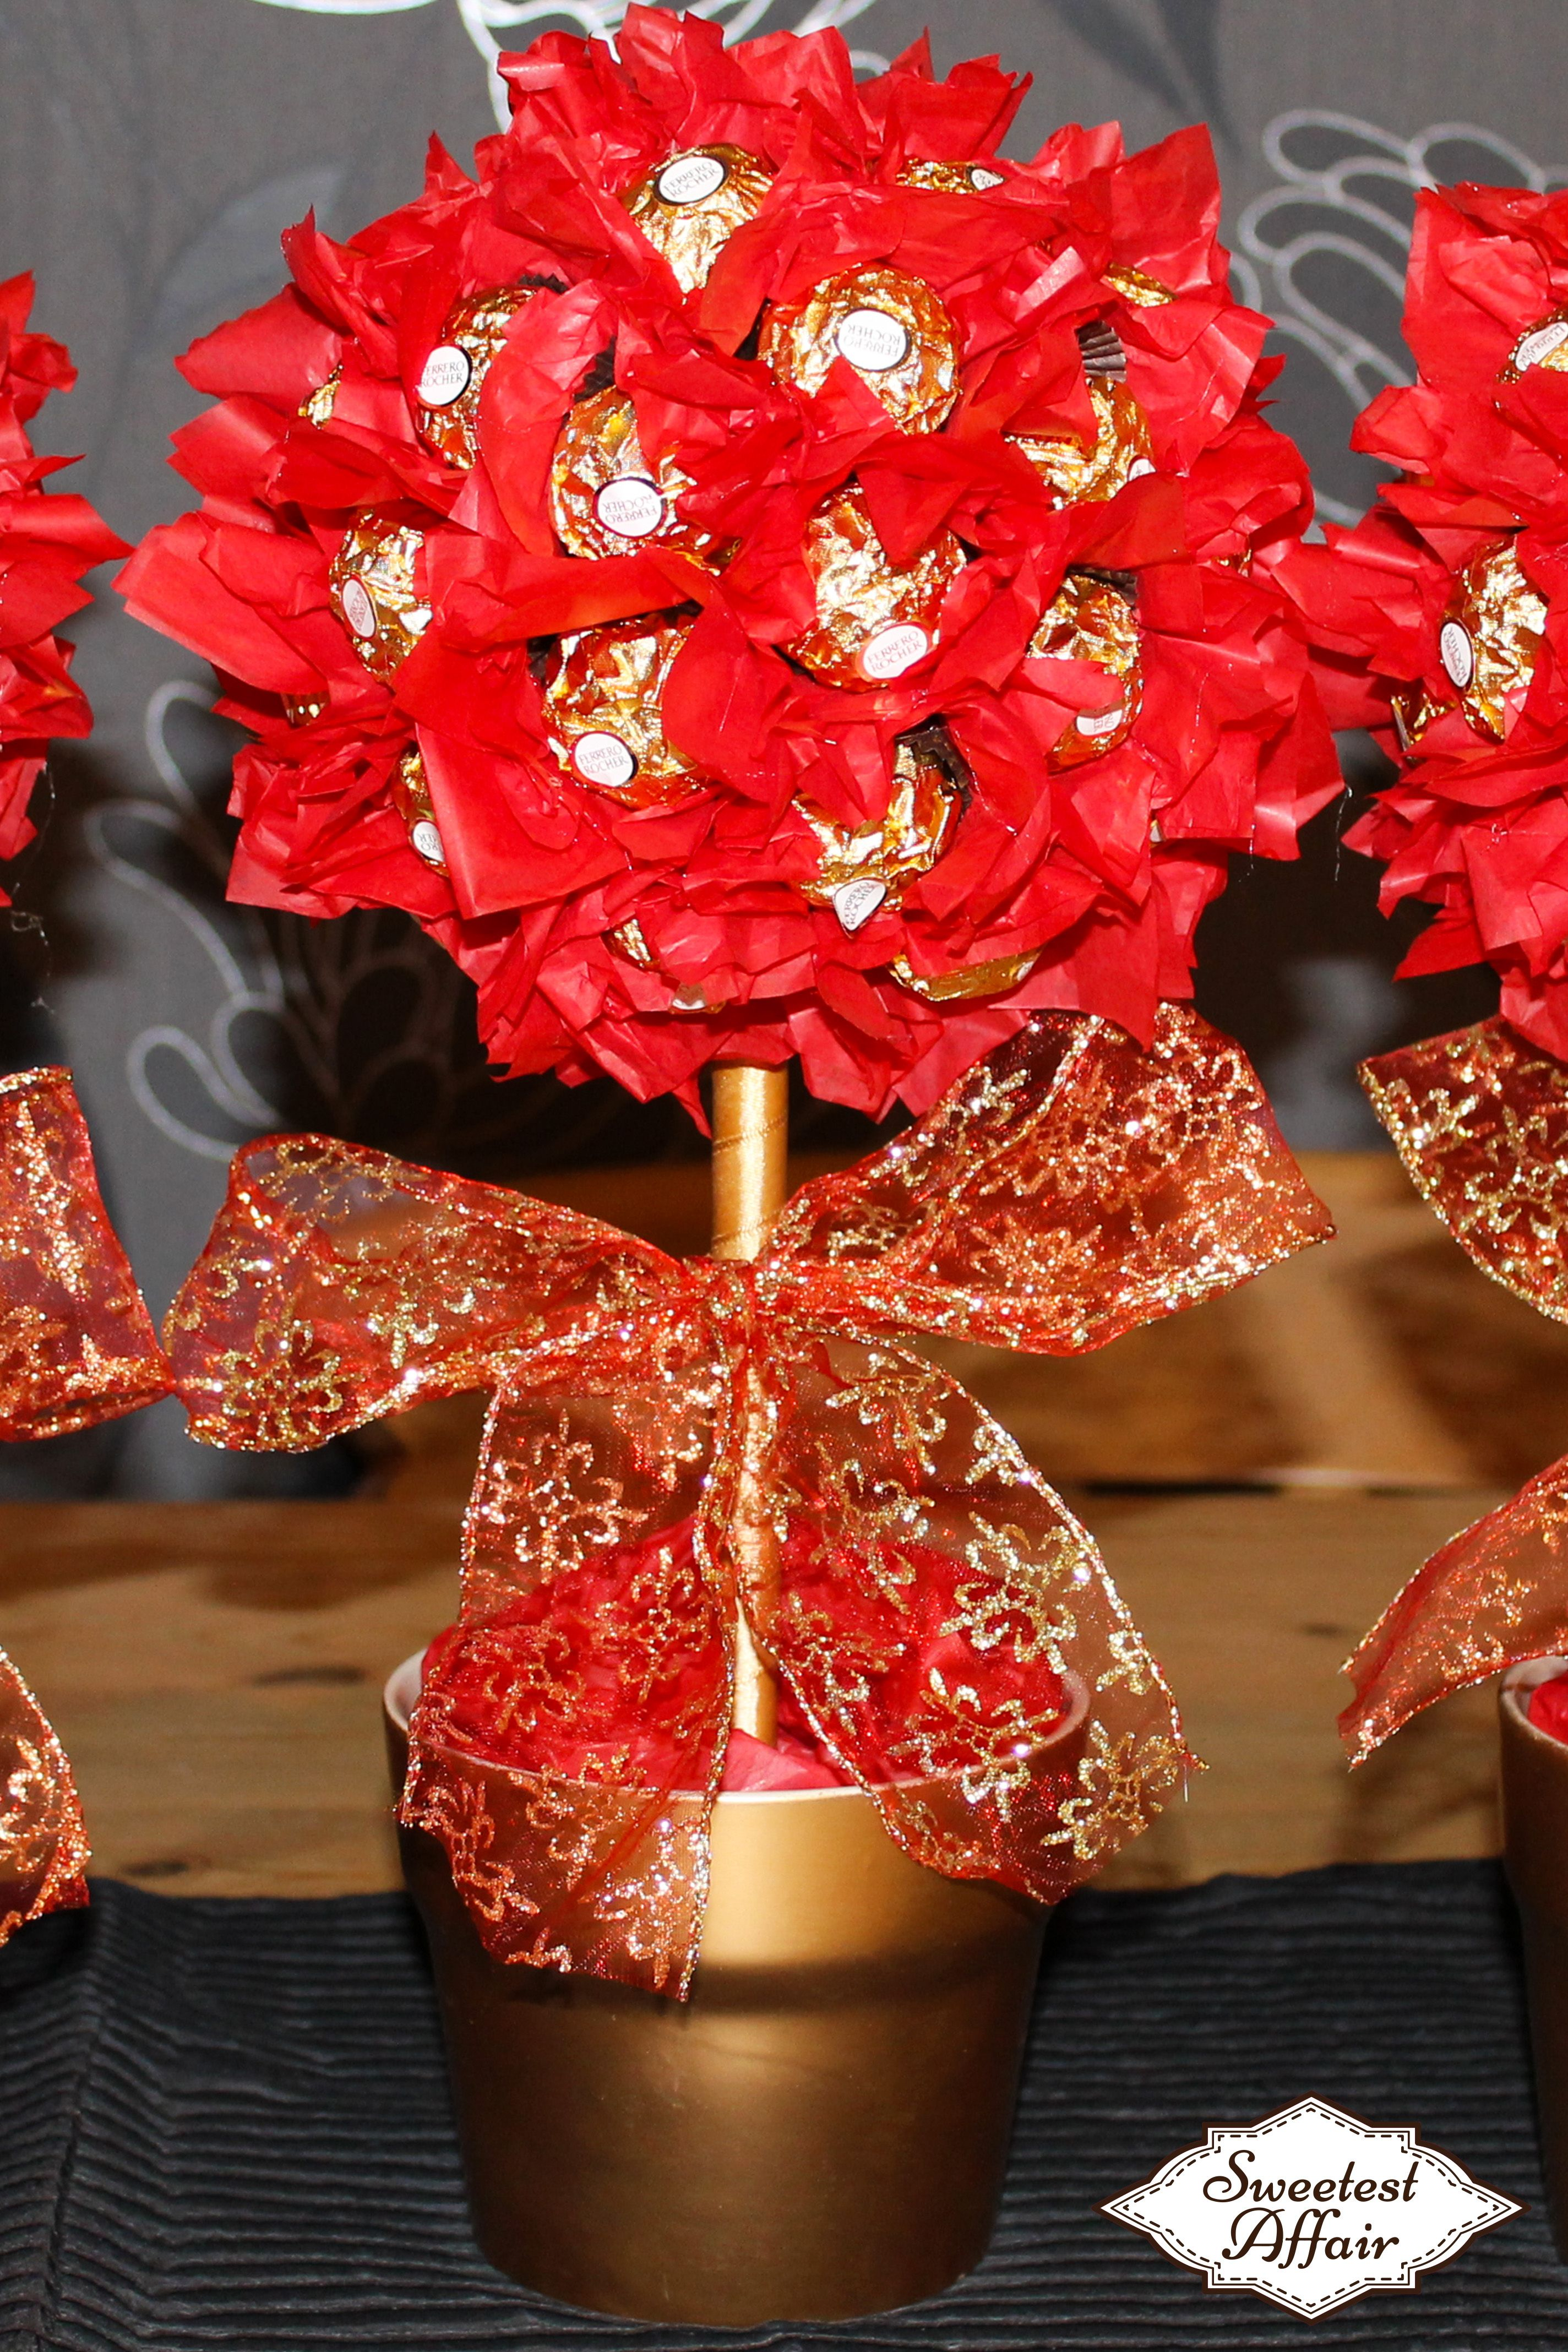 Red white and gold wedding sweet tree centrepieces ferrero rocher red white and gold wedding sweet tree centrepieces ferrero rocher sweet trees http izmirmasajfo Images